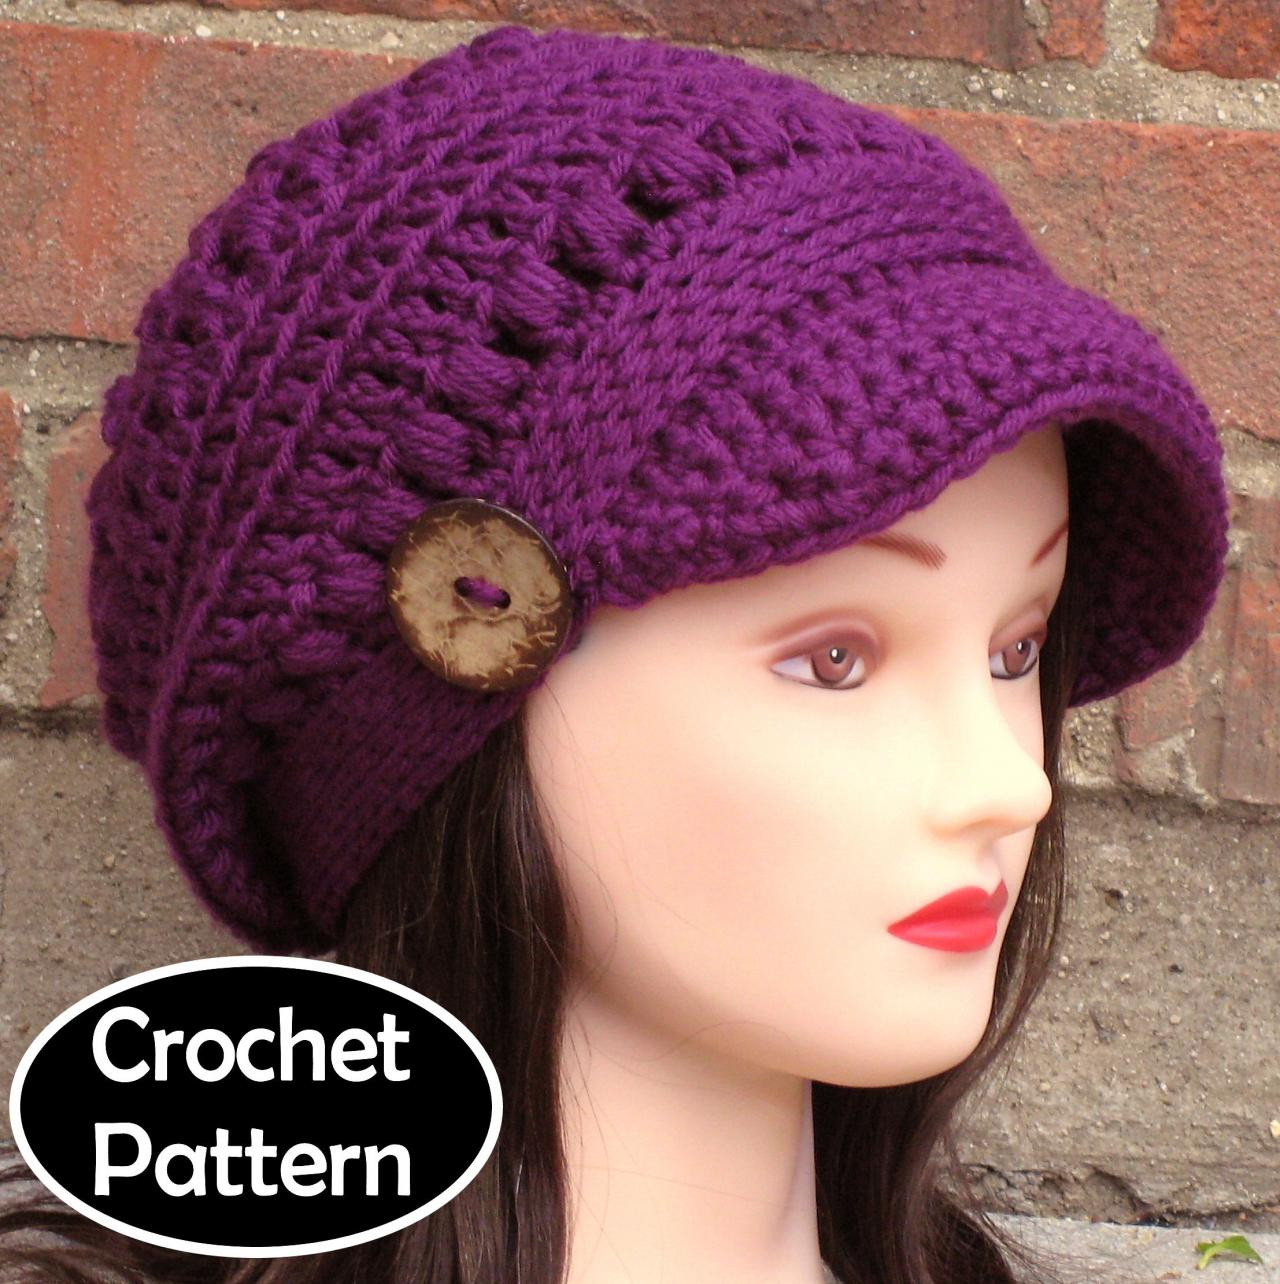 Awesome Free Crochet Patterns for Women S Winter Hats Free Slouchy Hat Pattern Of Amazing 45 Photos Free Slouchy Hat Pattern